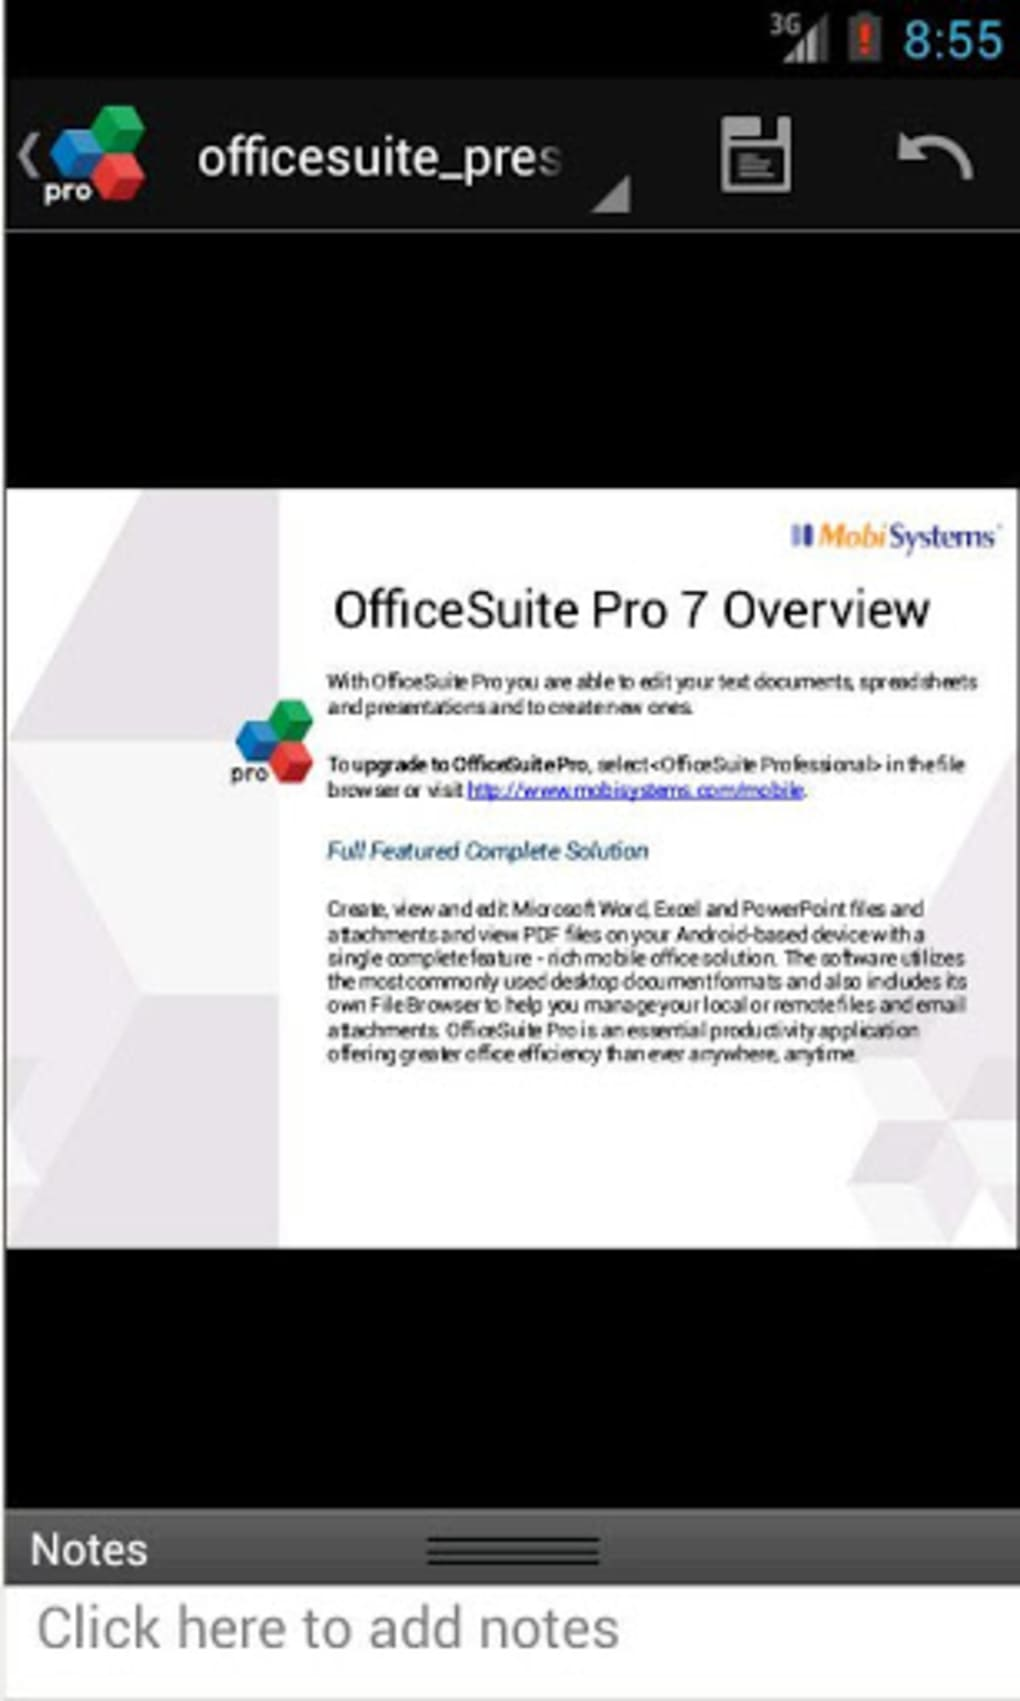 download free office suite pro 7 for android